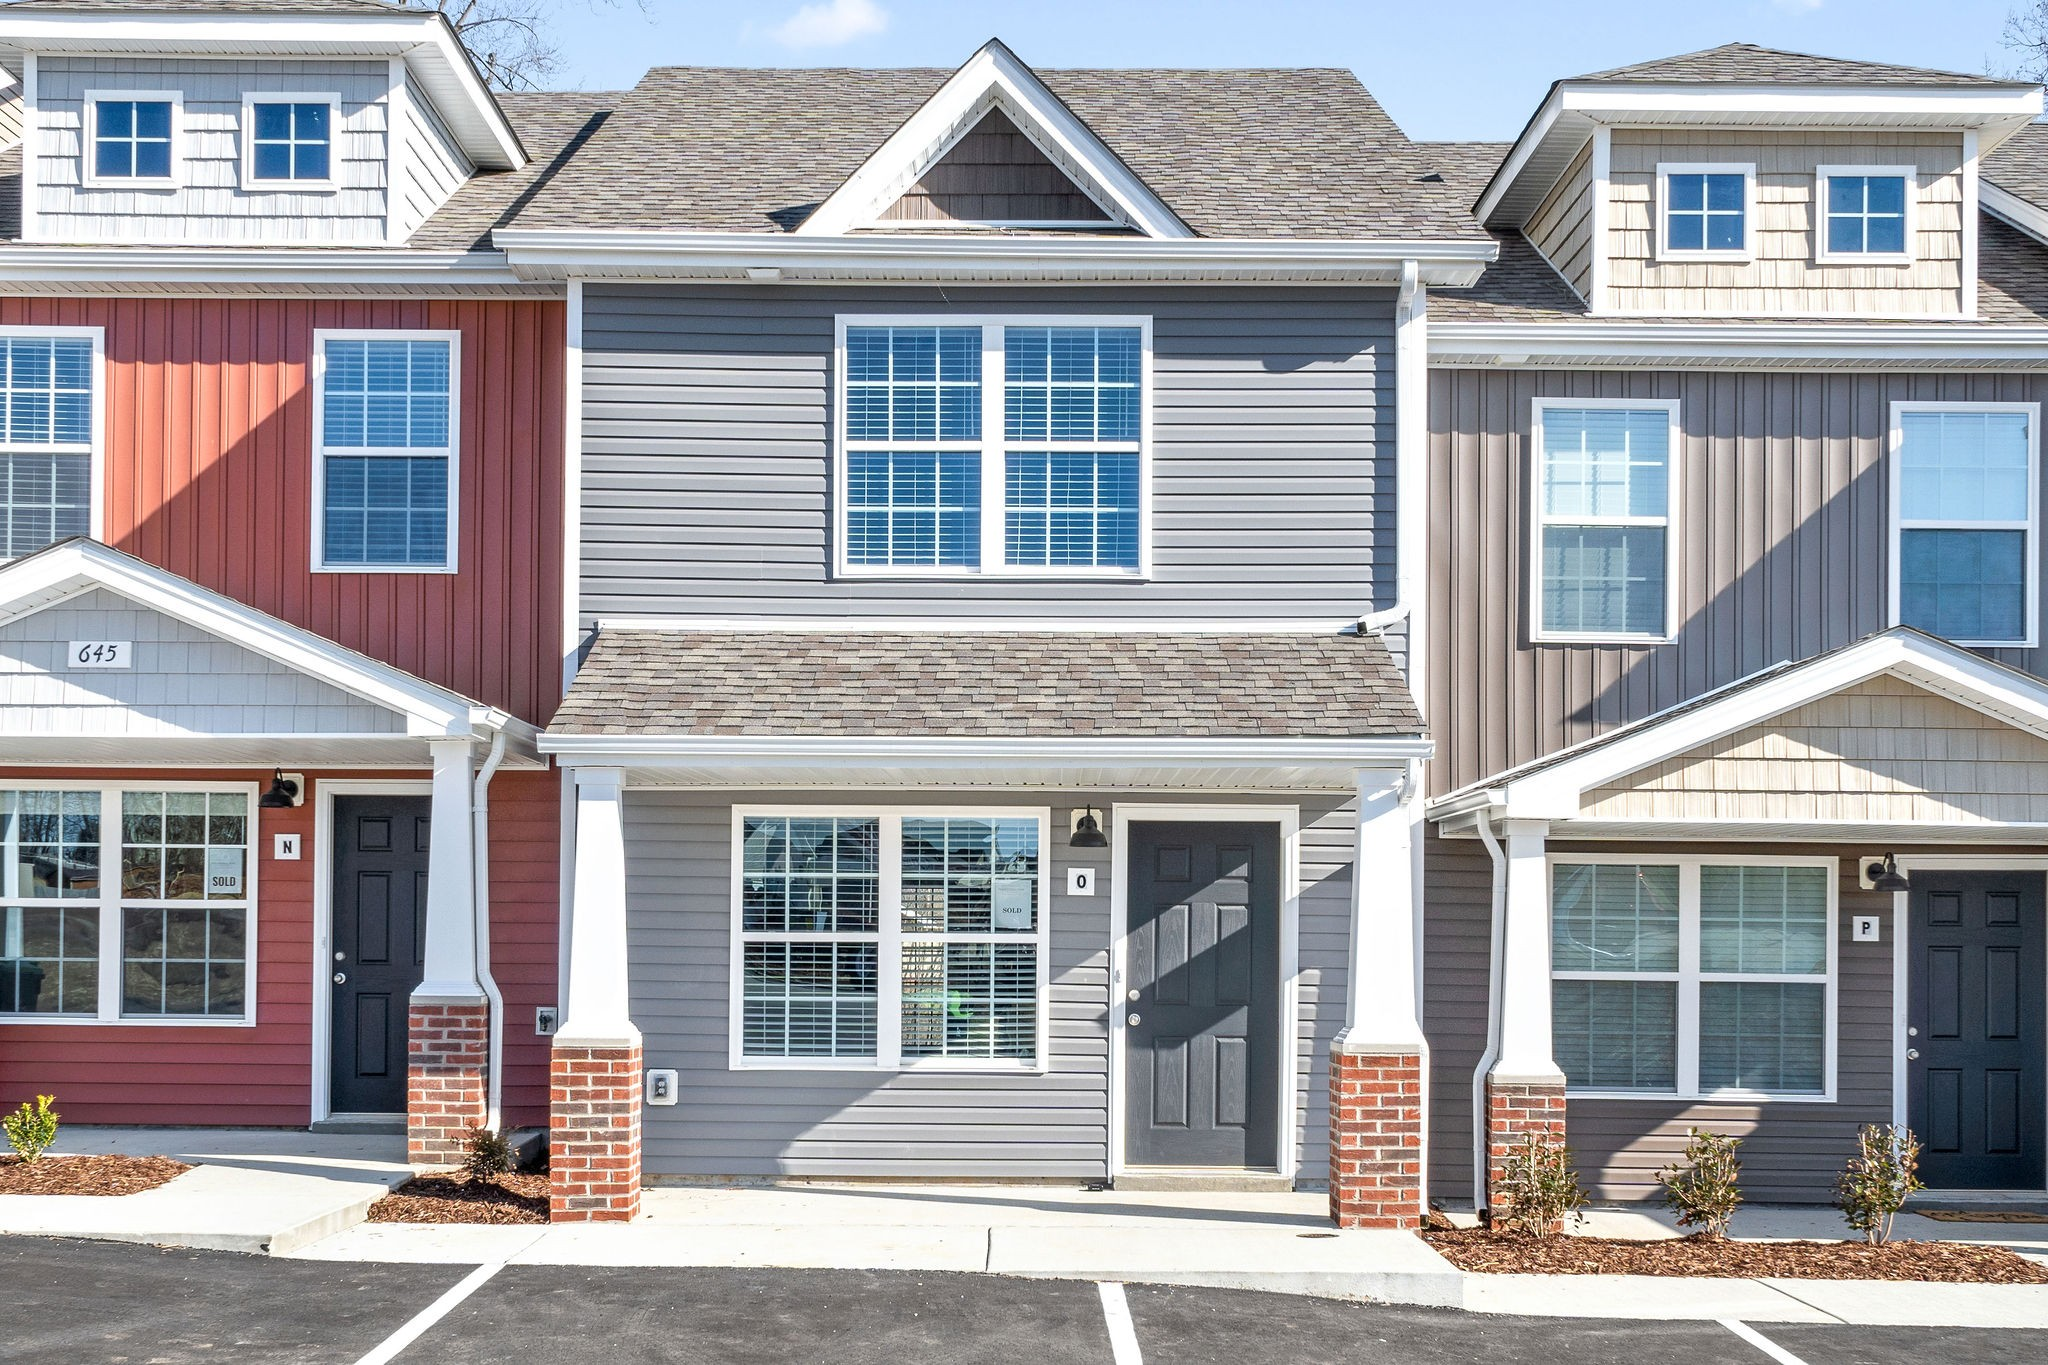 Check Out This Amazing New Construction Townhome located close to Tennova Healthcare & Zoned for Rossview School District in Professional Park Commons - Stainless Steel Kitchen Appliances to include Stove, Dishwasher & Range Microwave - Granite Counters in the Kitchen are Standard Selection - LVT Floors Installed on Main Level - COMPLETE & Ready for Immediate Closing!